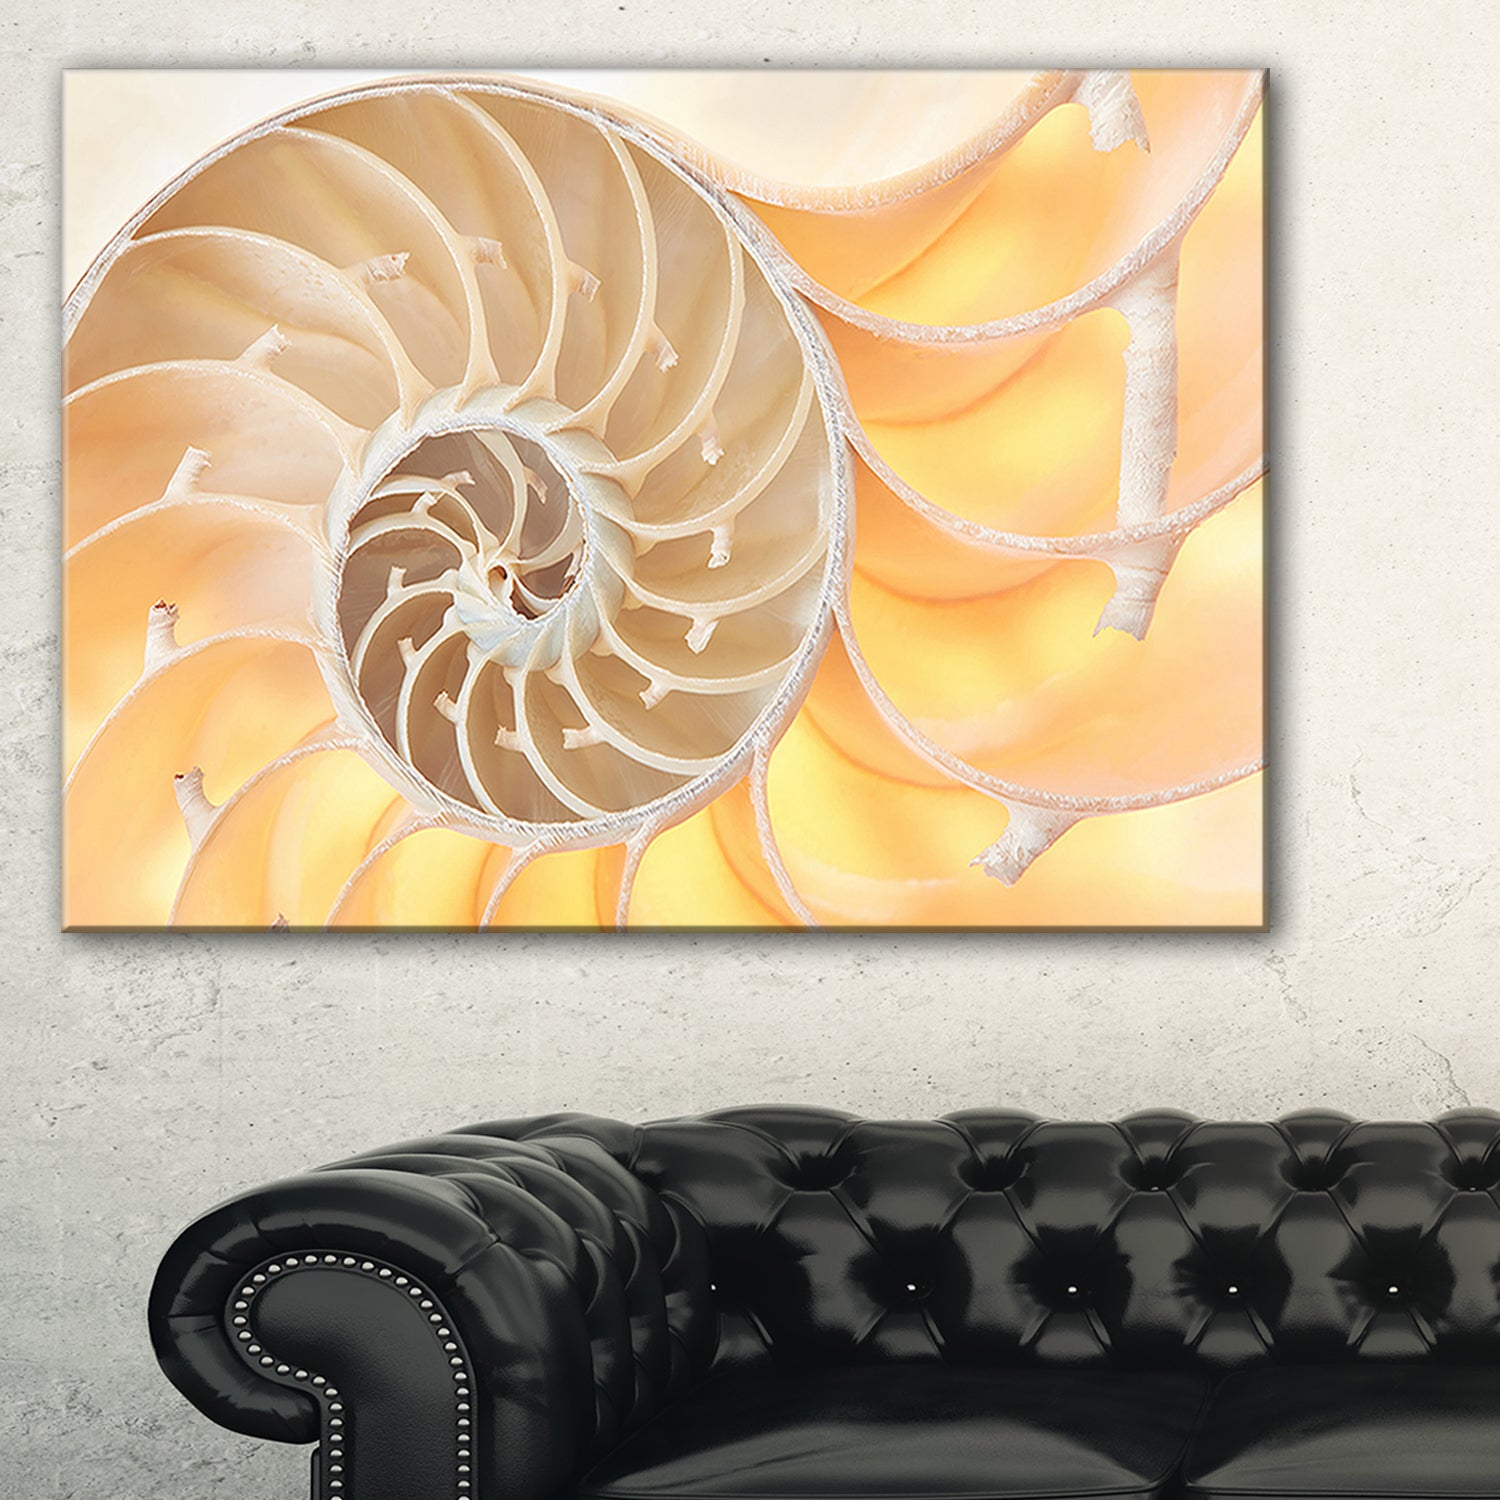 Delighted Unique Metal Wall Art Contemporary - The Wall Art ...